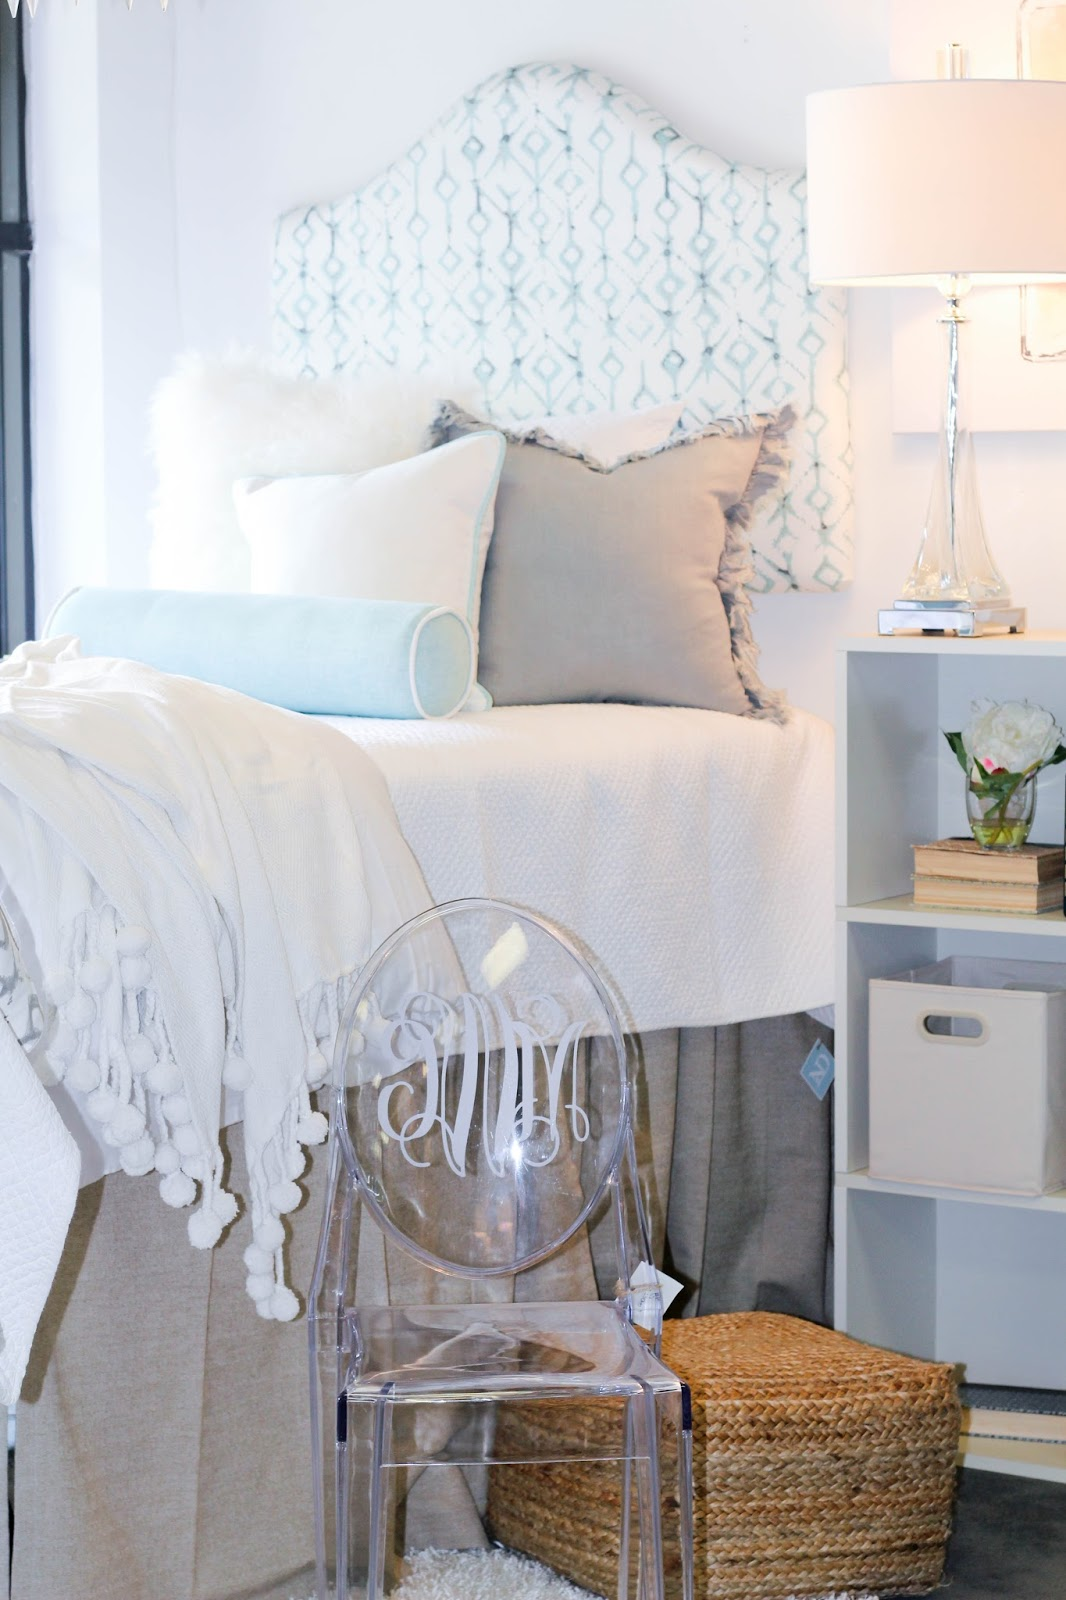 Prep In Your Step: Dorm Room Design with Not Just Dorms